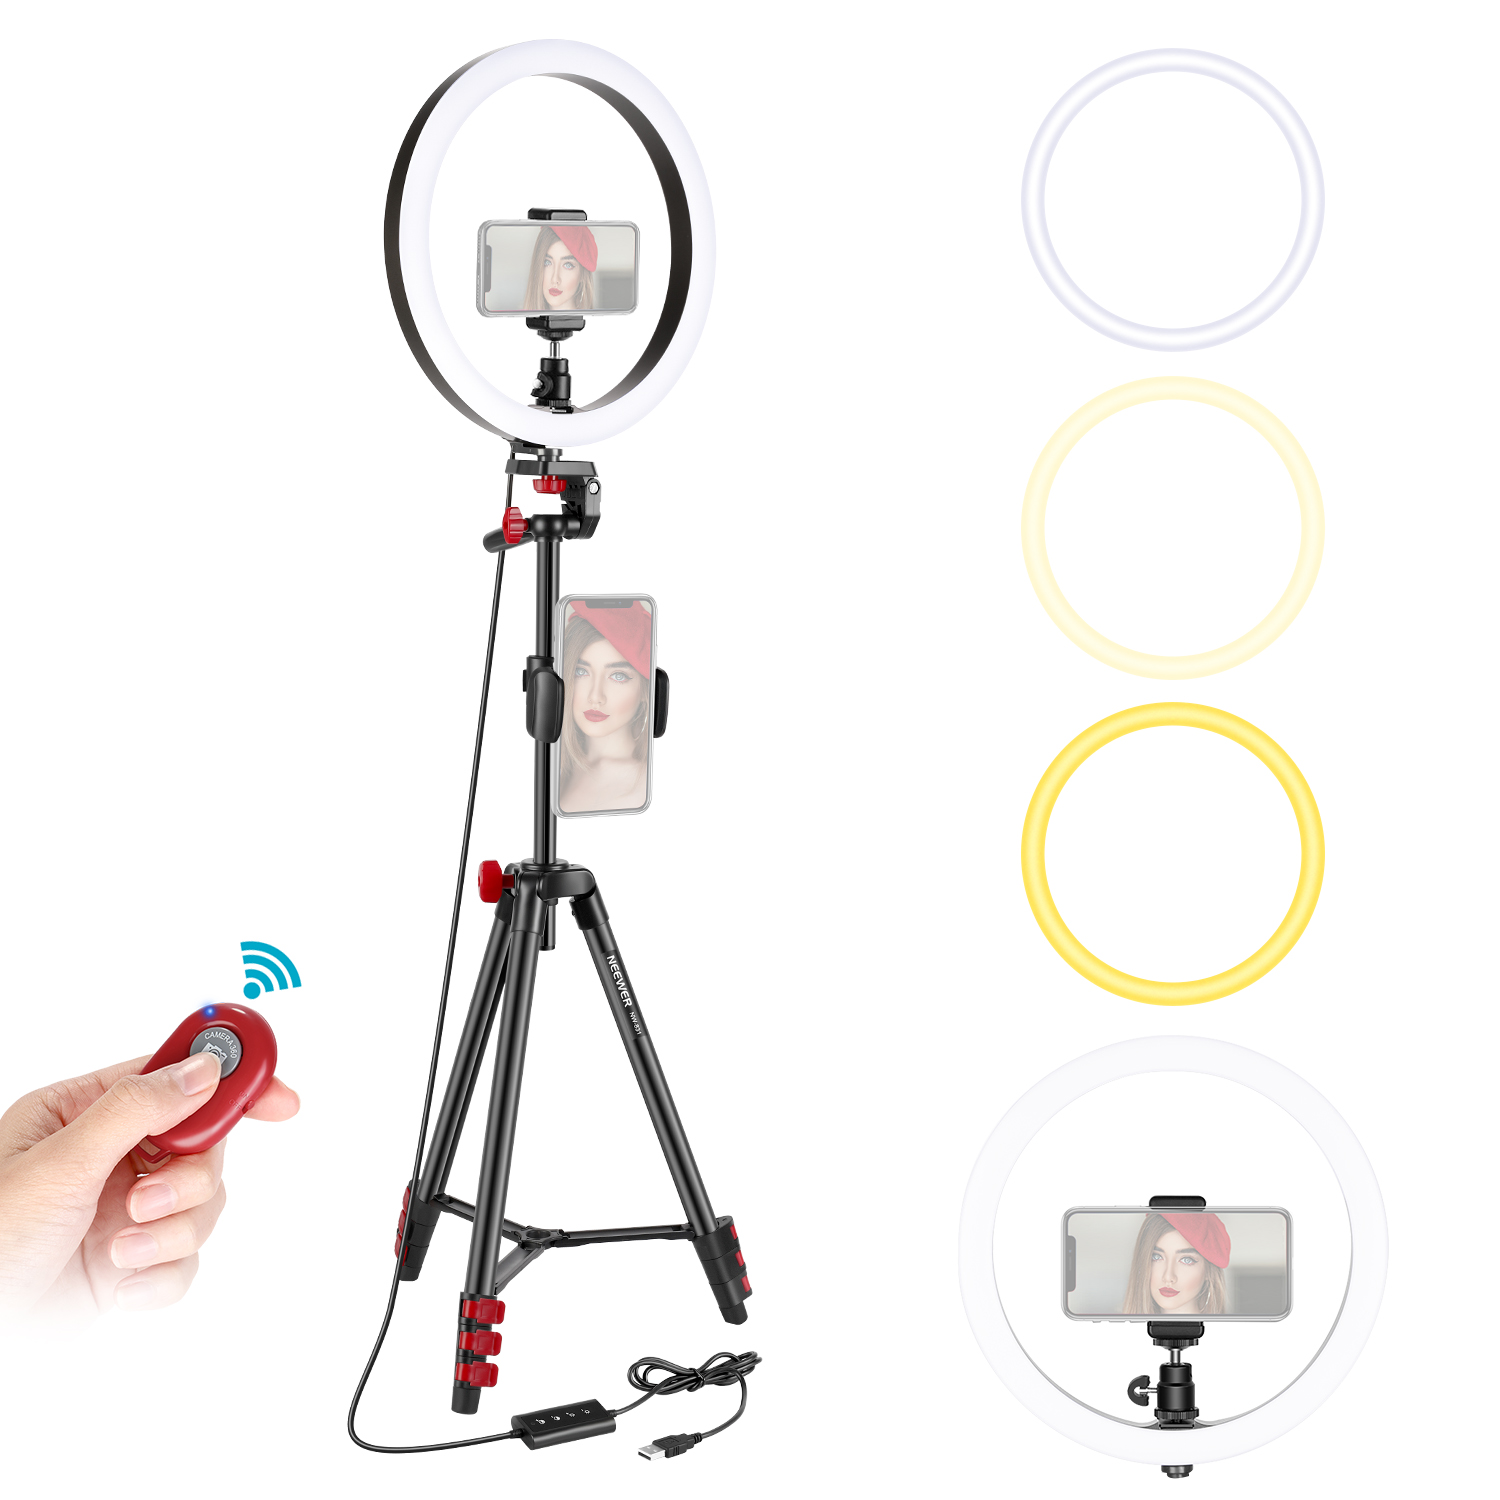 Compatible with iPhone Android 3 Light Modes Dimmable Ringlight for Live Streaming//YouTube//Tiktok//Makeup//Video Shooting Neewer 10-inch LED Ring Light with 32-inch Tripod Stand and Cellphone Holder